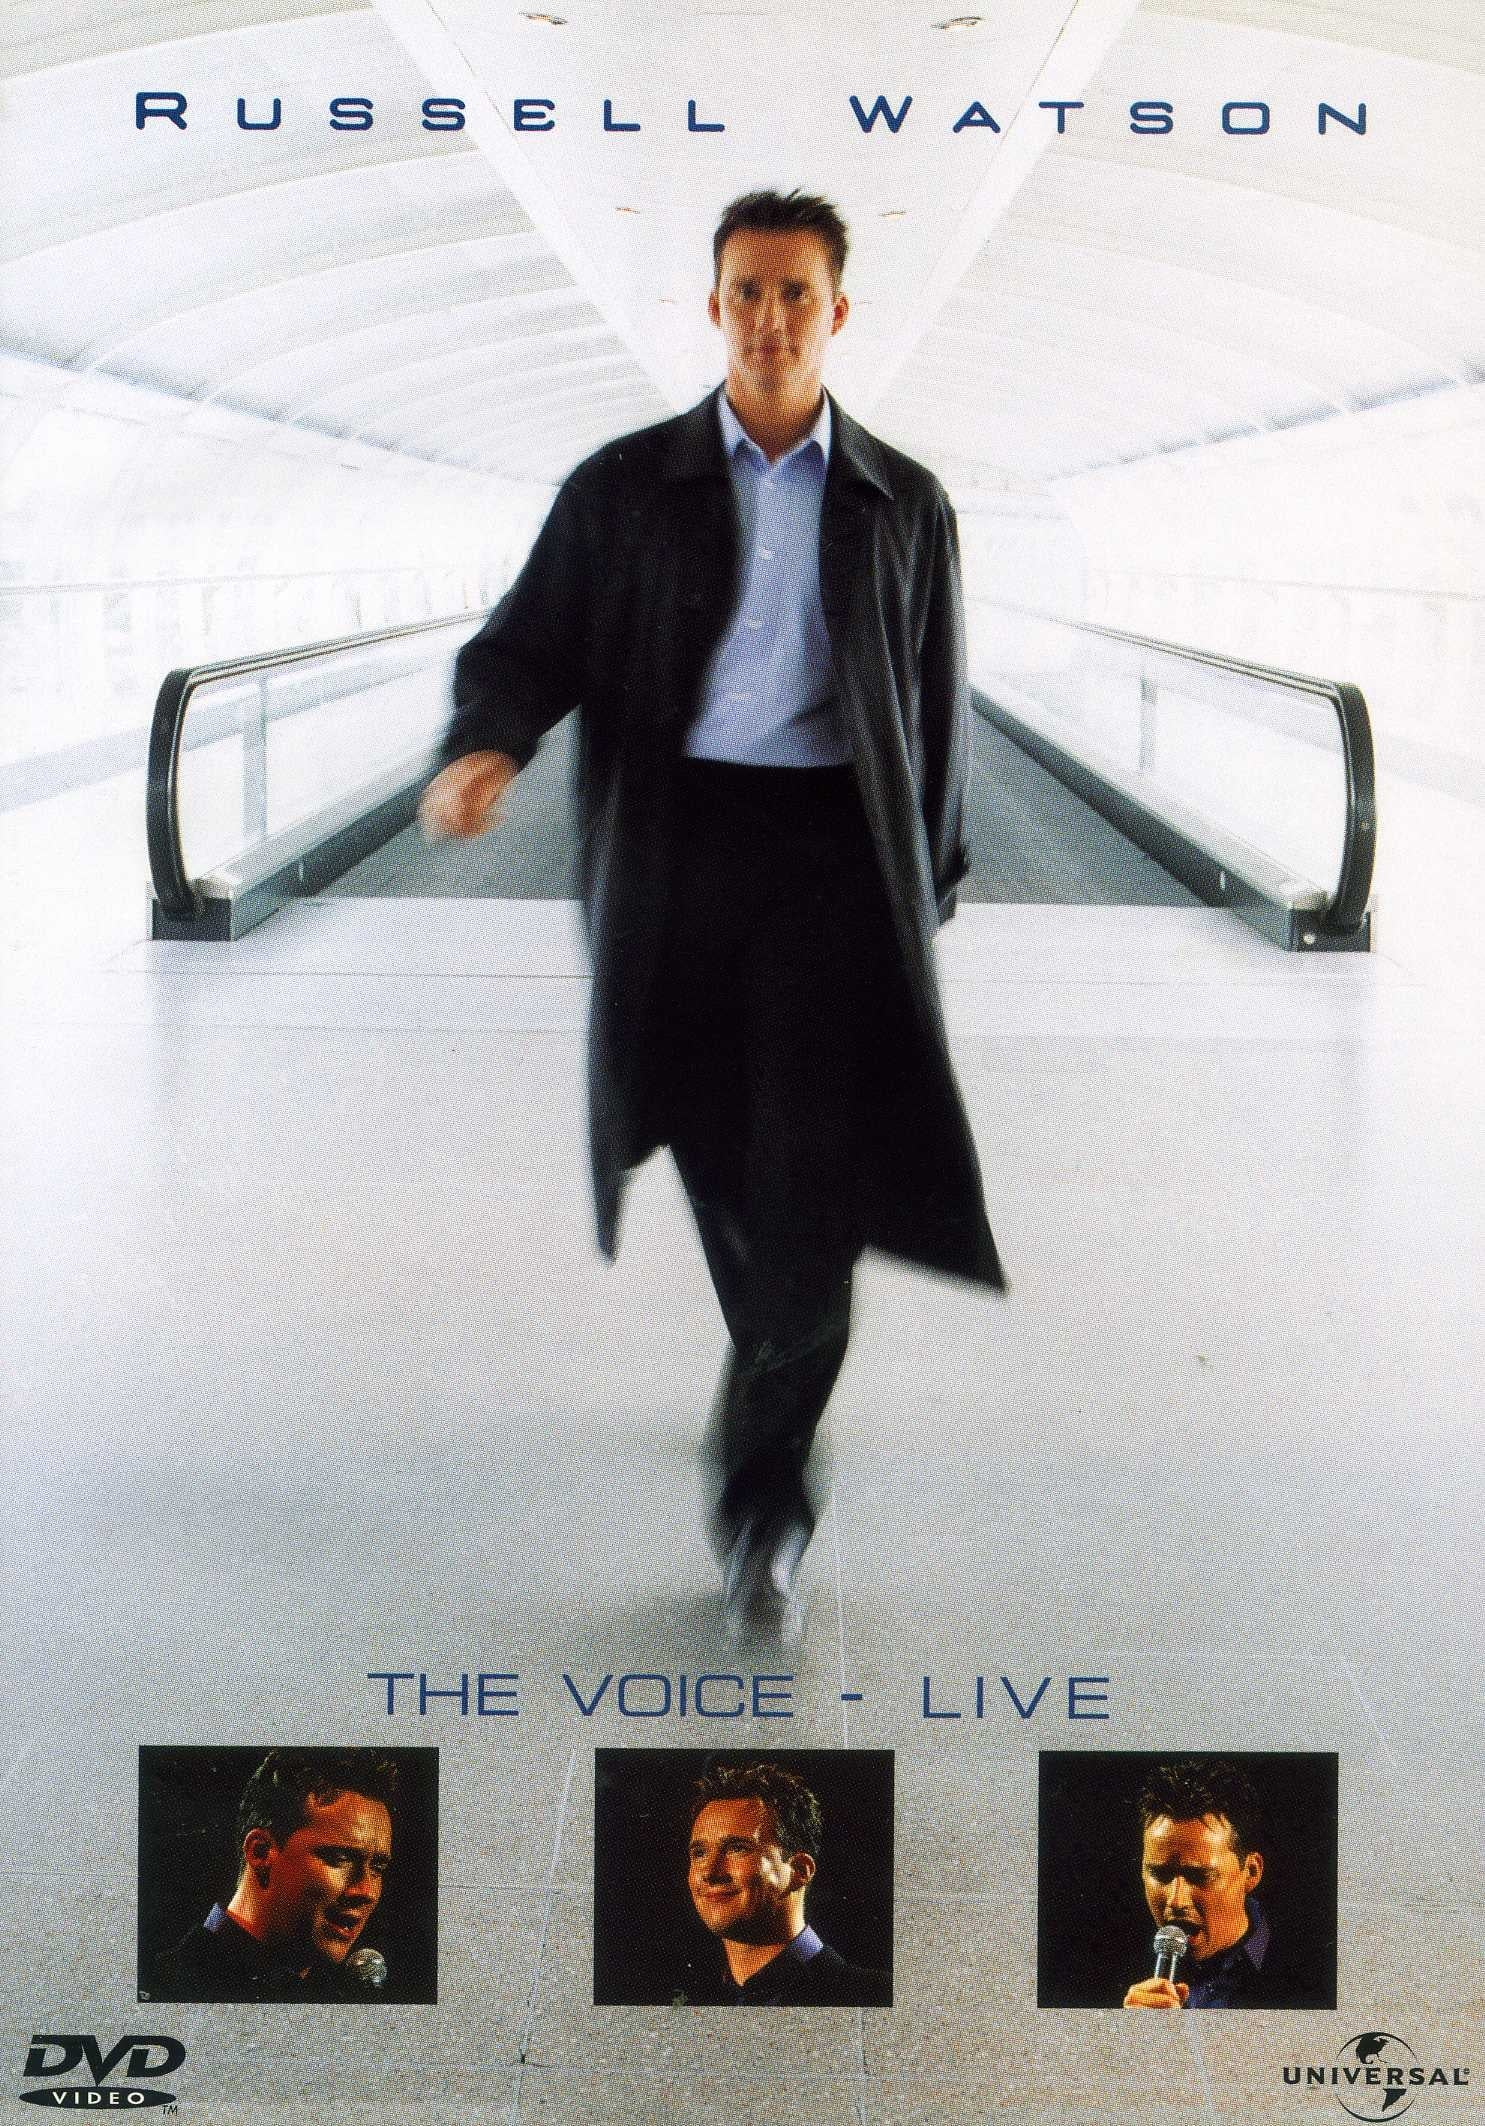 Russell Watson. The Voice Live 2001 (1970)